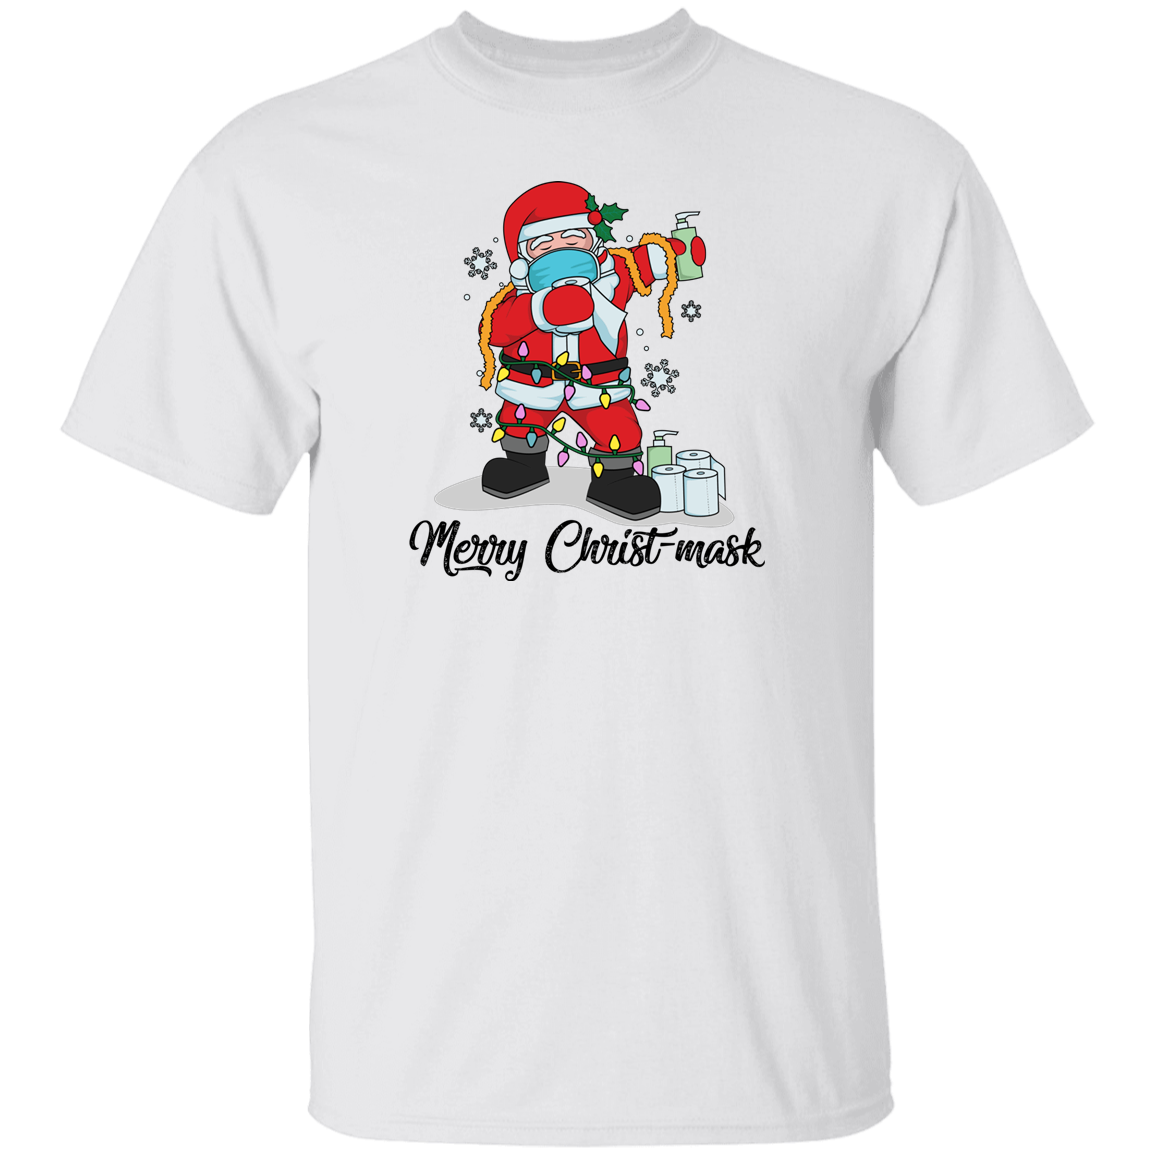 Merry Christ-mask Family Shirts - CSCC106